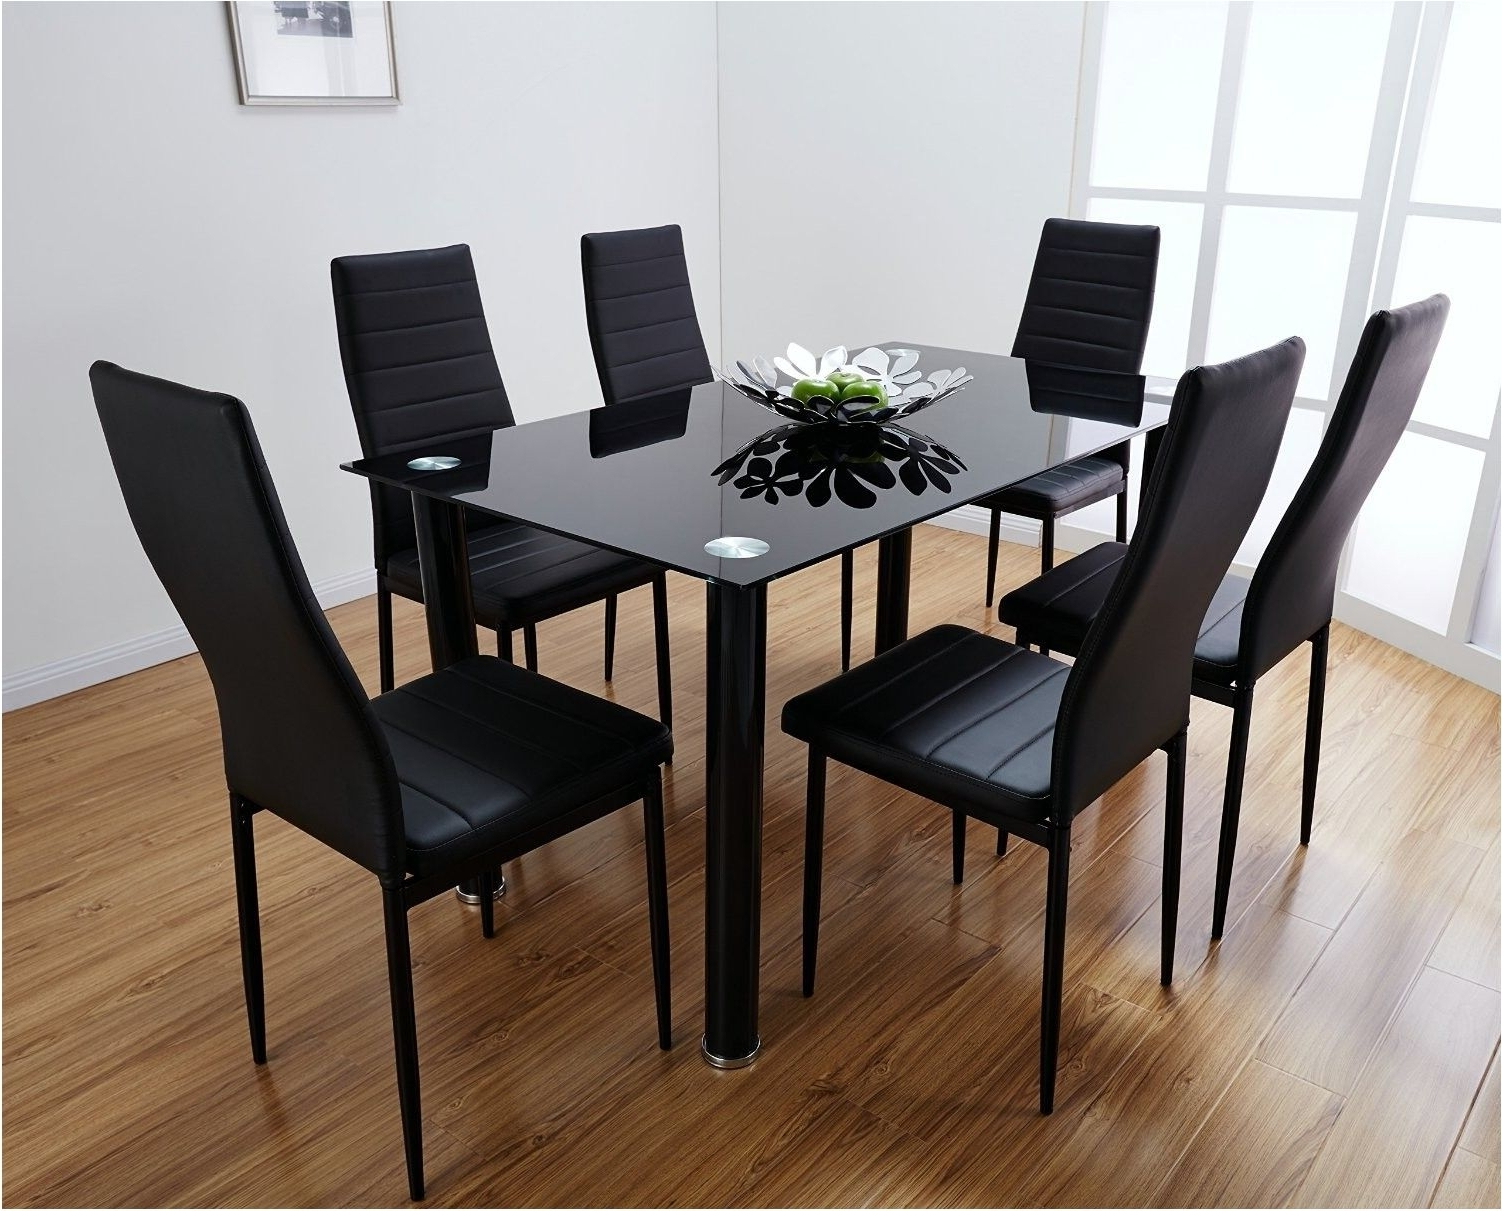 Most Recent Glass Dining Tables With 6 Chairs Throughout Delightful Extending Black Glass Dining Table And 6 Chairs Set Table (View 21 of 25)